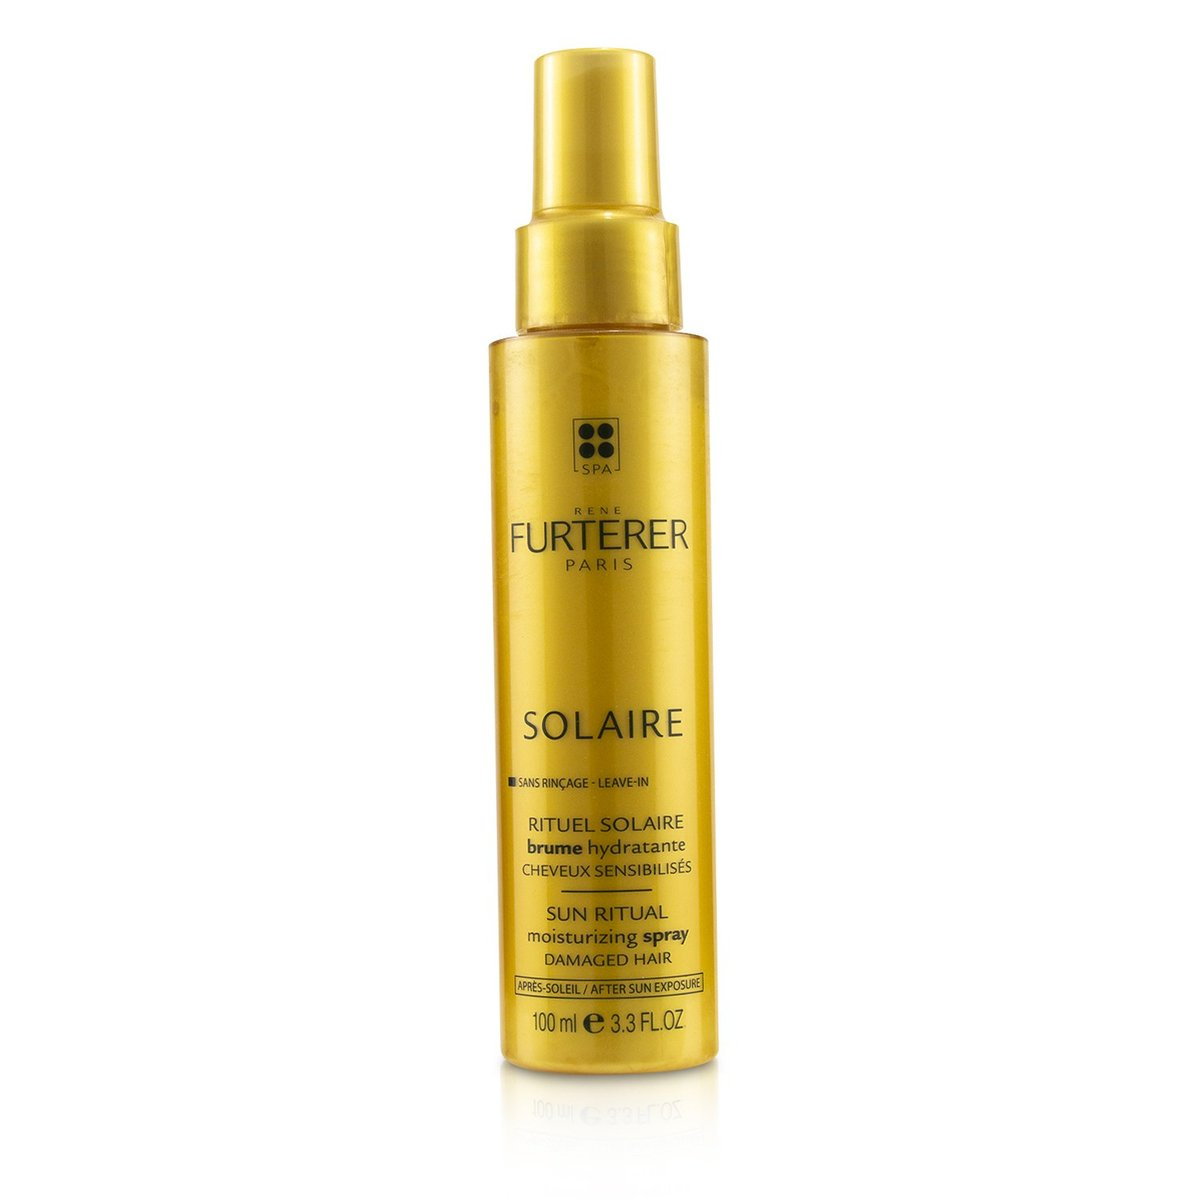 Solaire Sun Ritual Moisturizing Spray (Damaged Hair - After Sun Exposure)  -[平行進口][護髮素/頭髮護理]